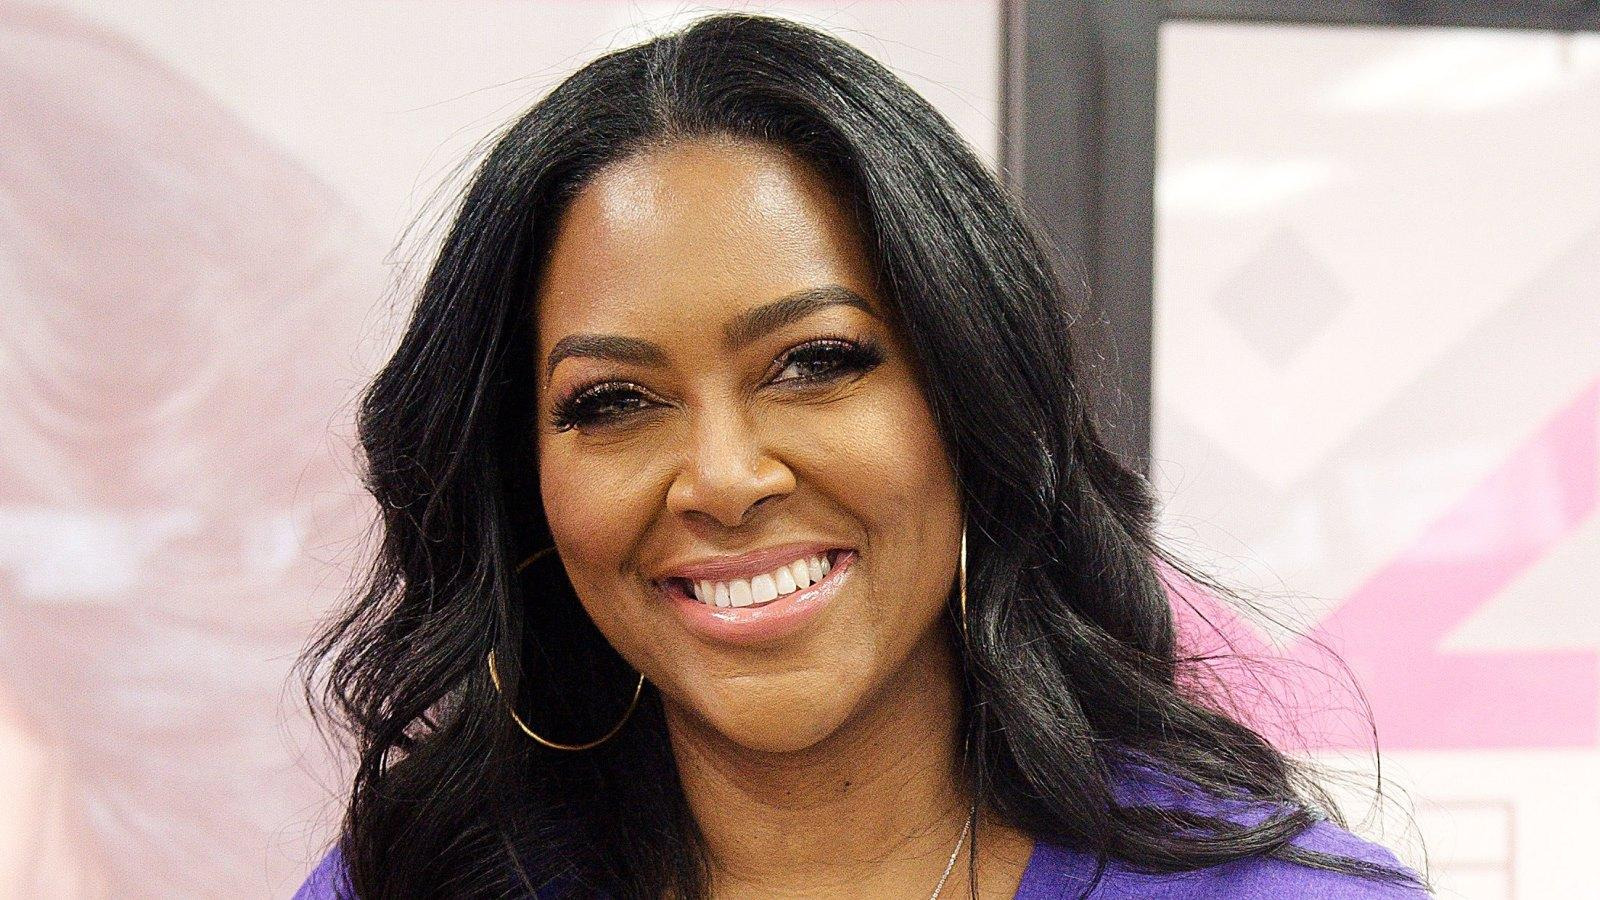 Kenya Moore Puts Her Booty On Display - Fans Tell Brookie's Mom That She Inspires Them